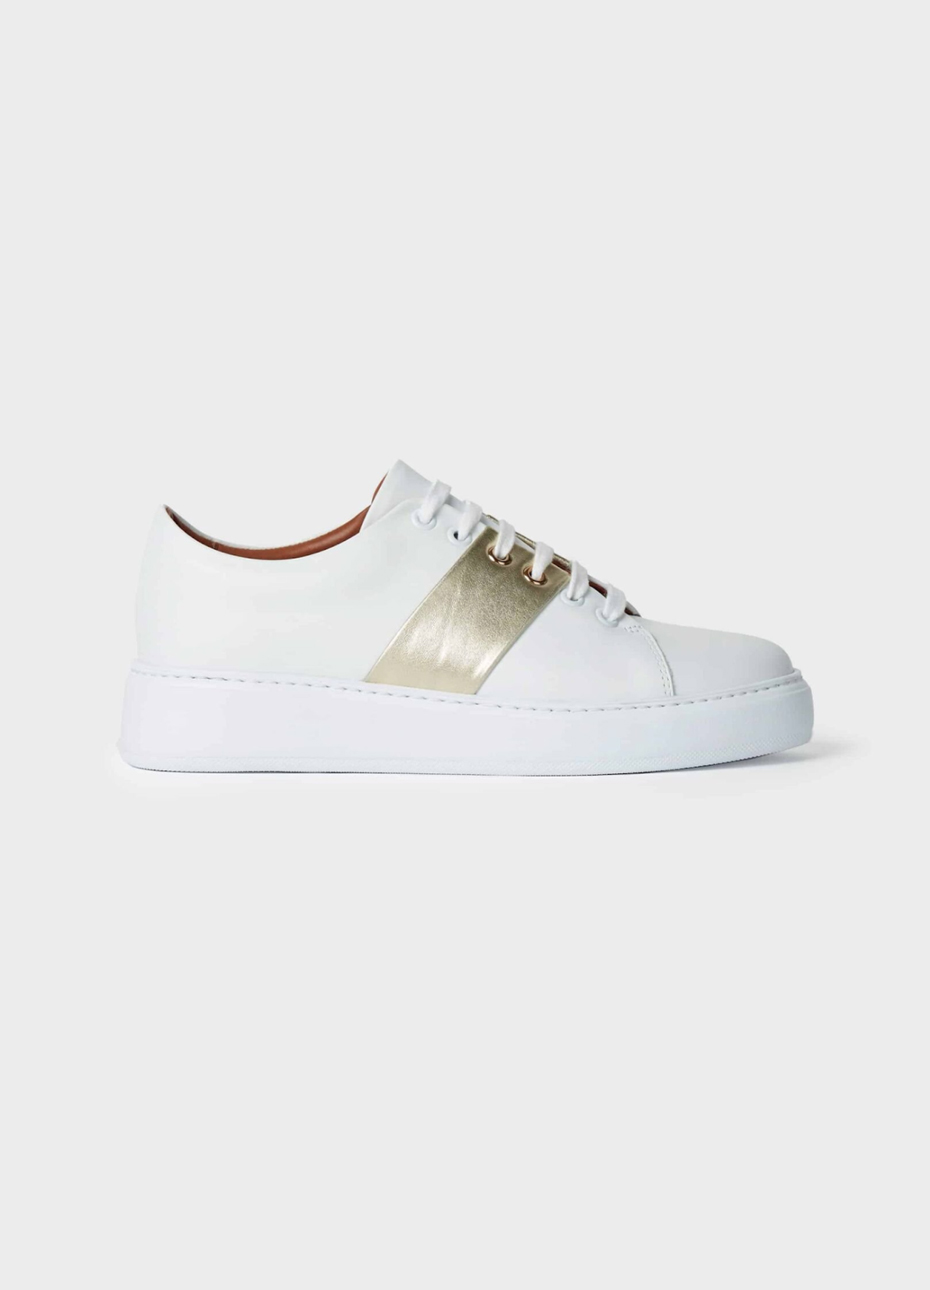 Hobbs leather trainer in white with a white sole and a gold metallic strip in the middle.